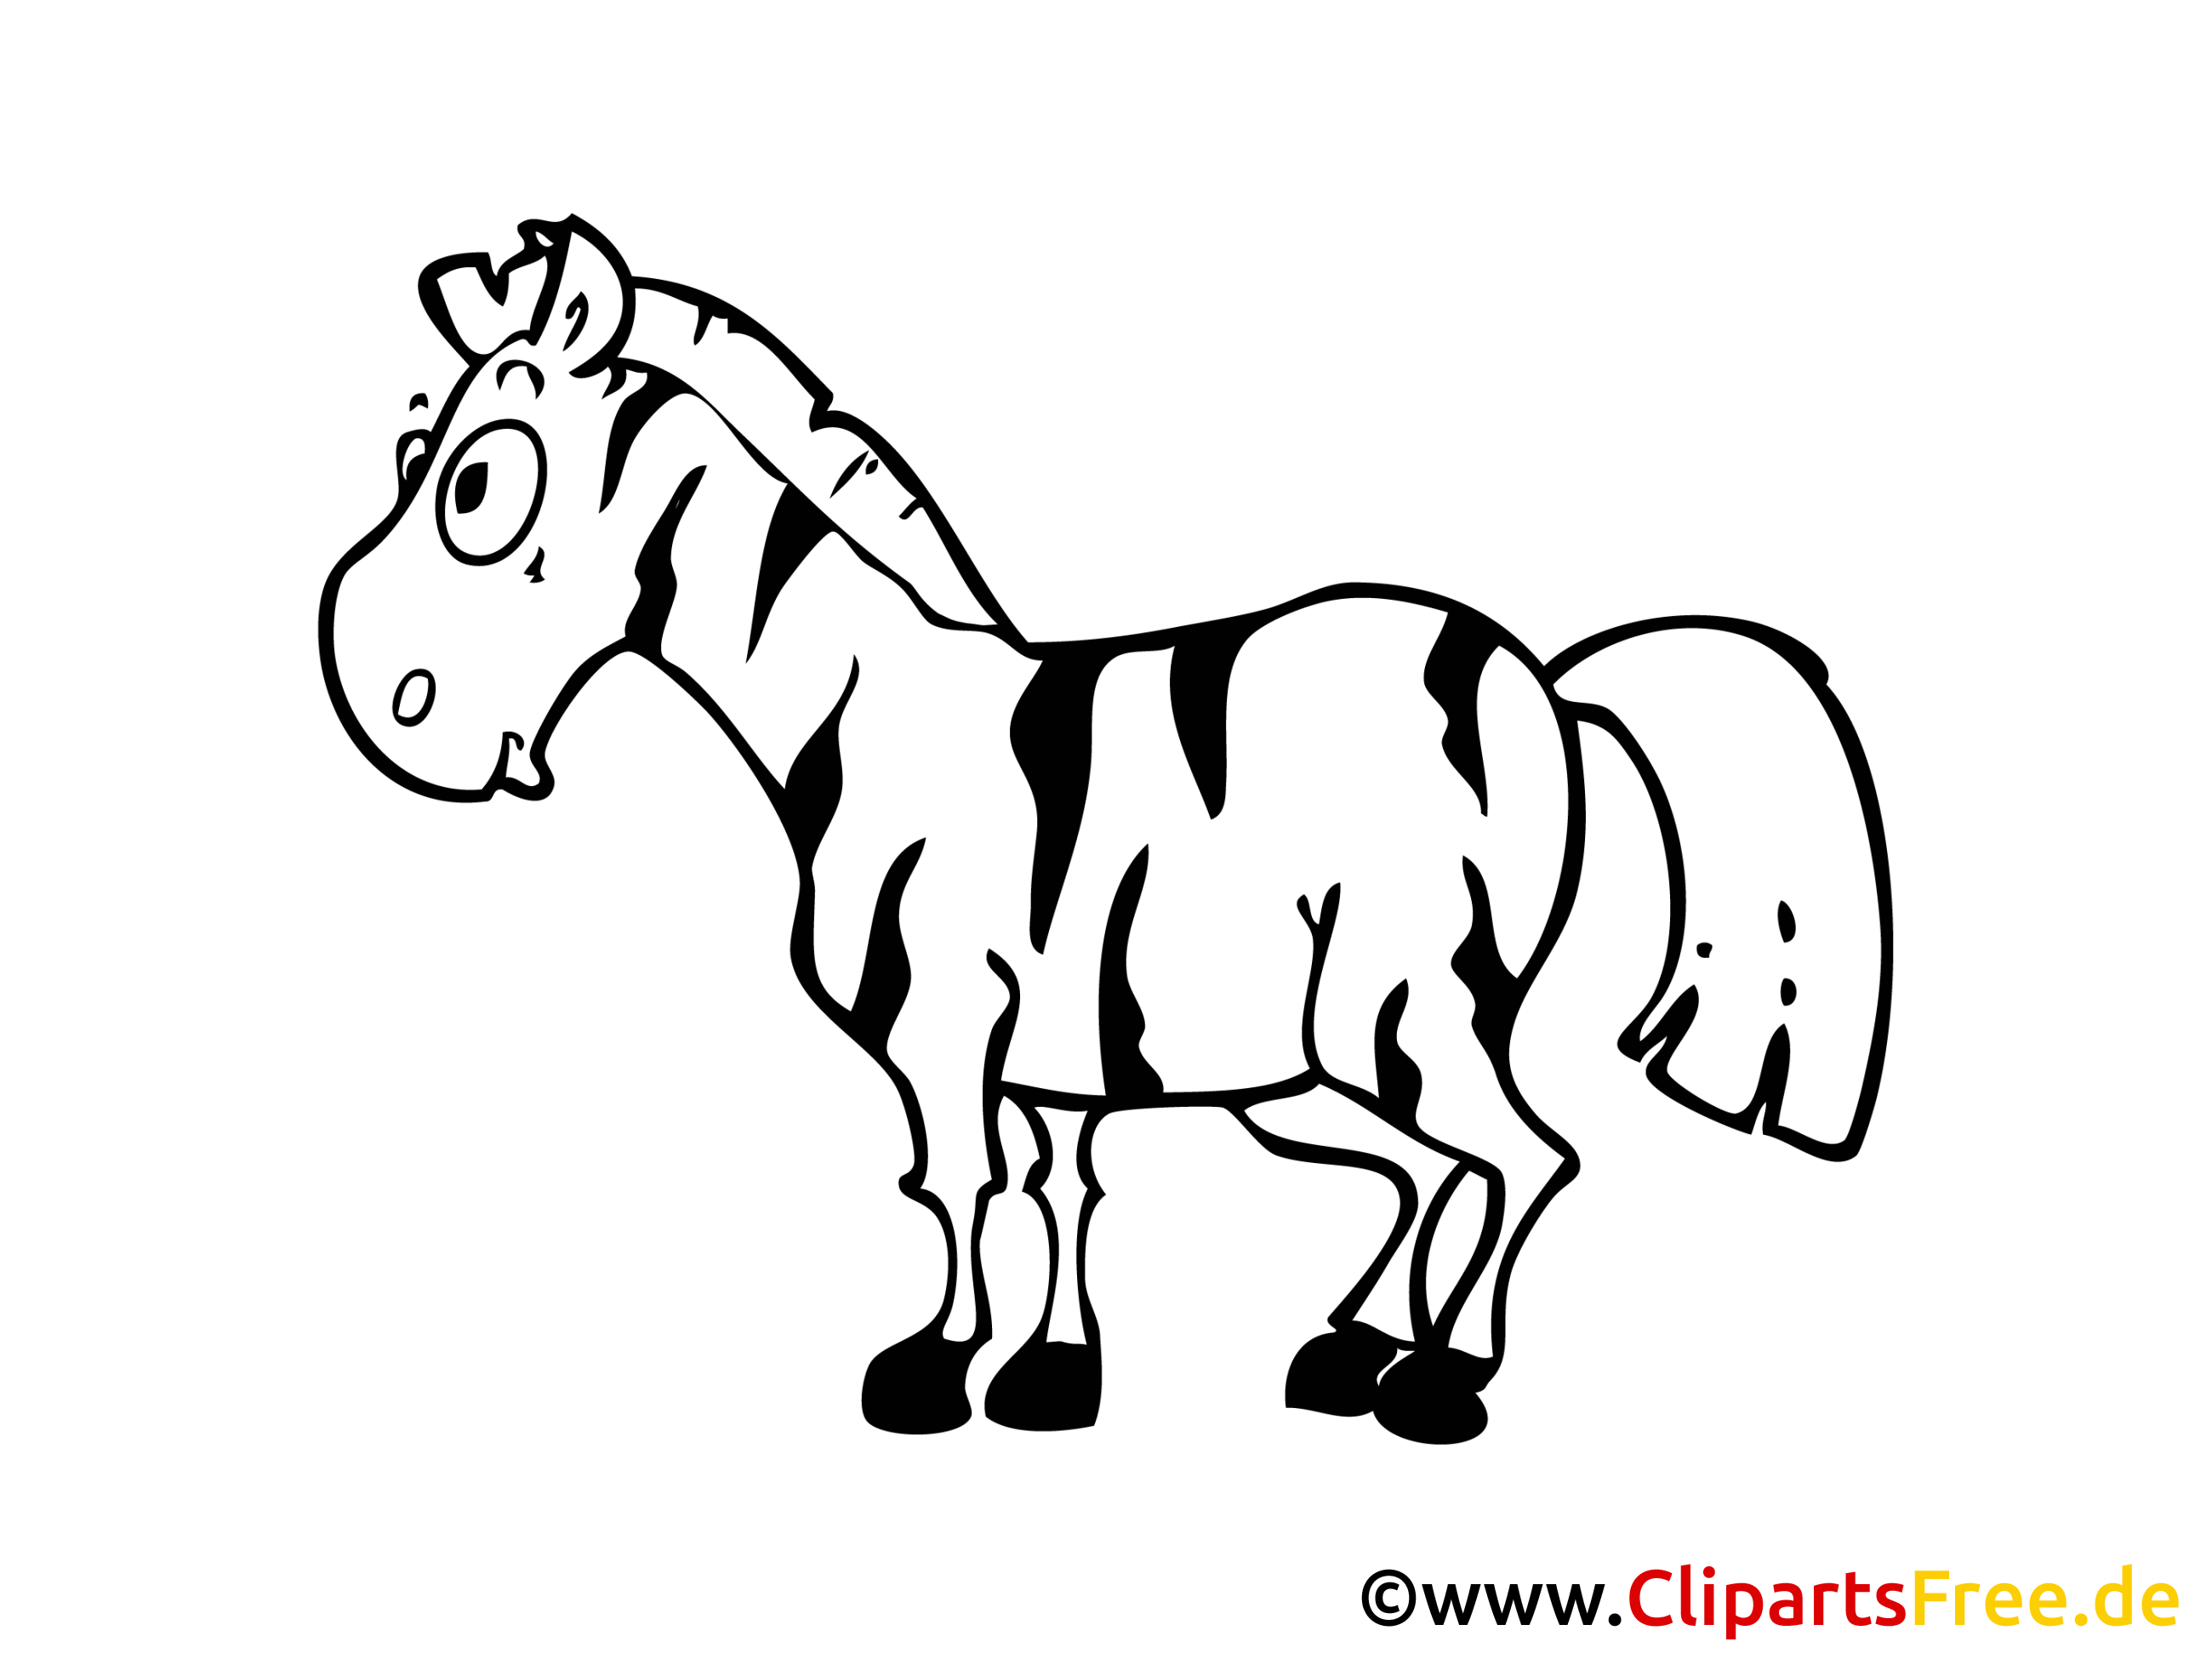 Zebra Bild, Clipart, Illustration, Comic, Cartoon gratis